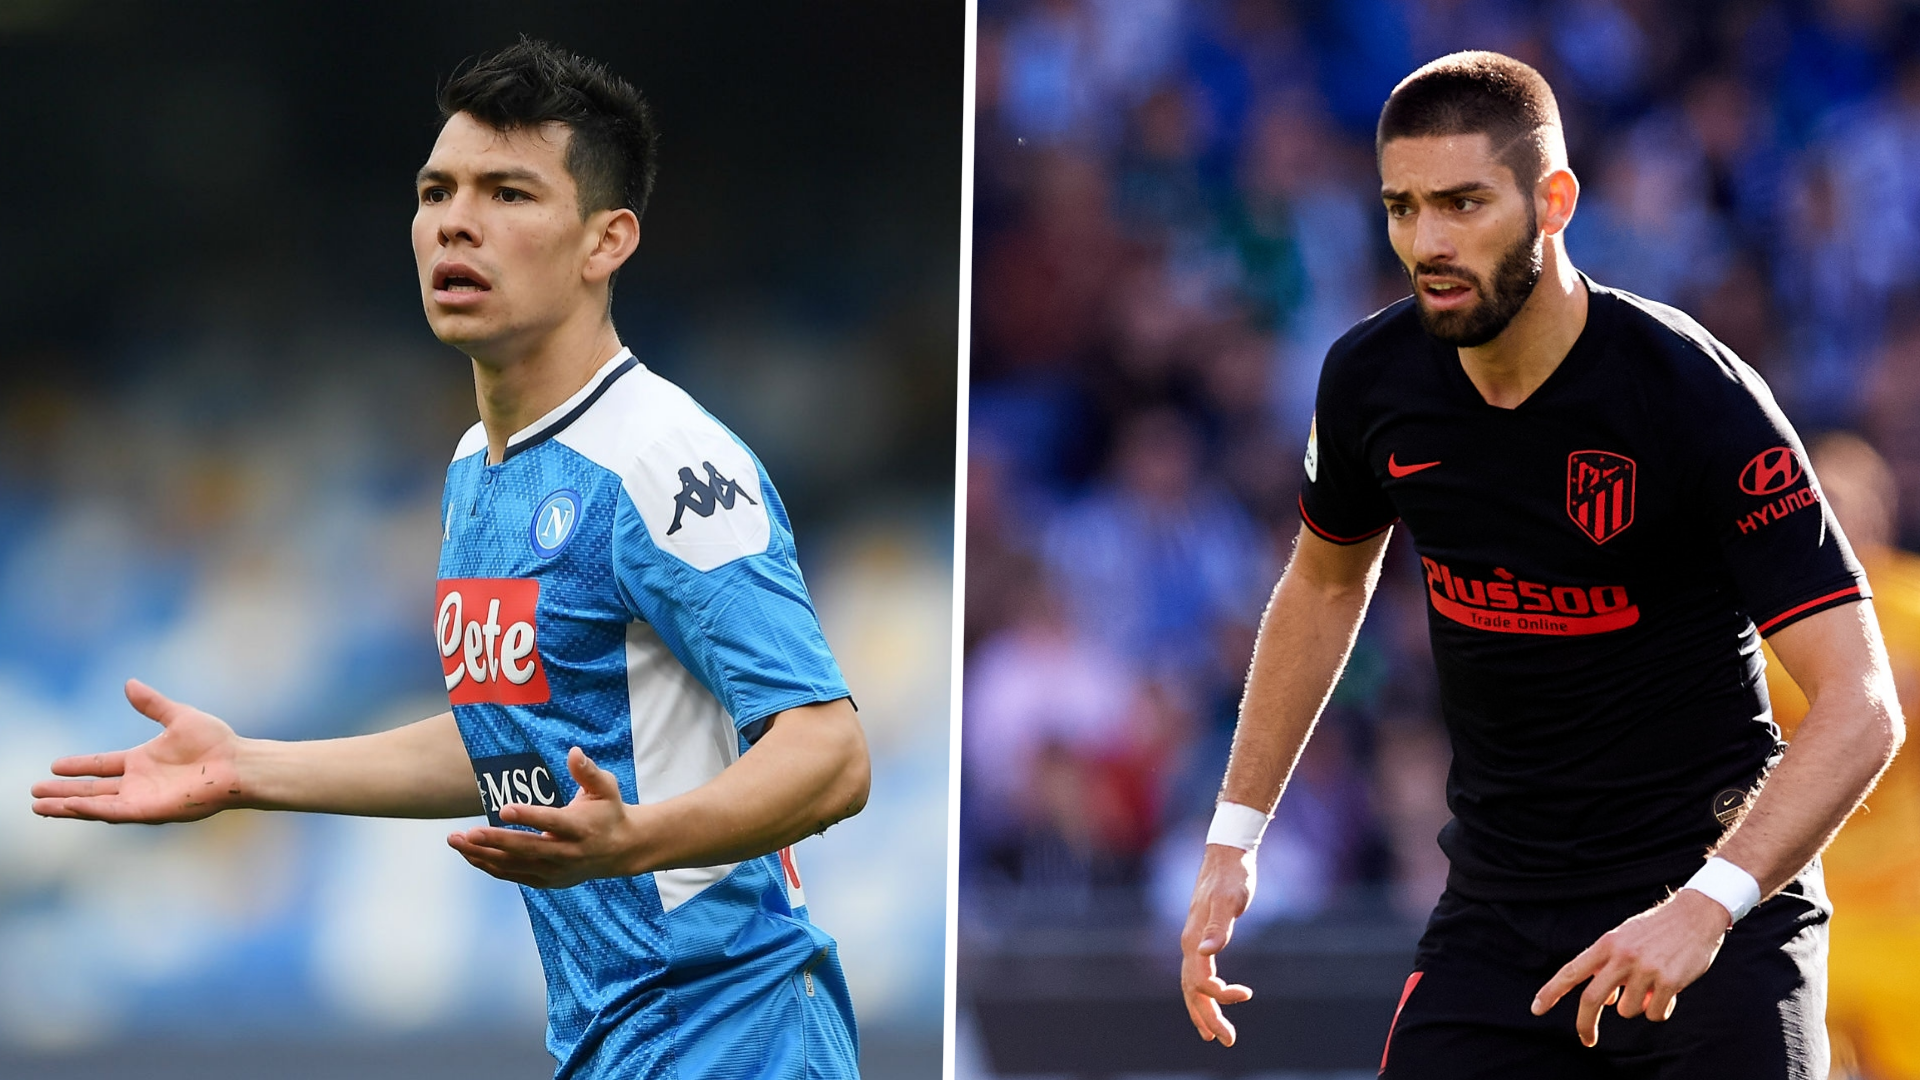 Benitez: Dalian Pro have discussed Carrasco-Lozano swap deal with Napoli